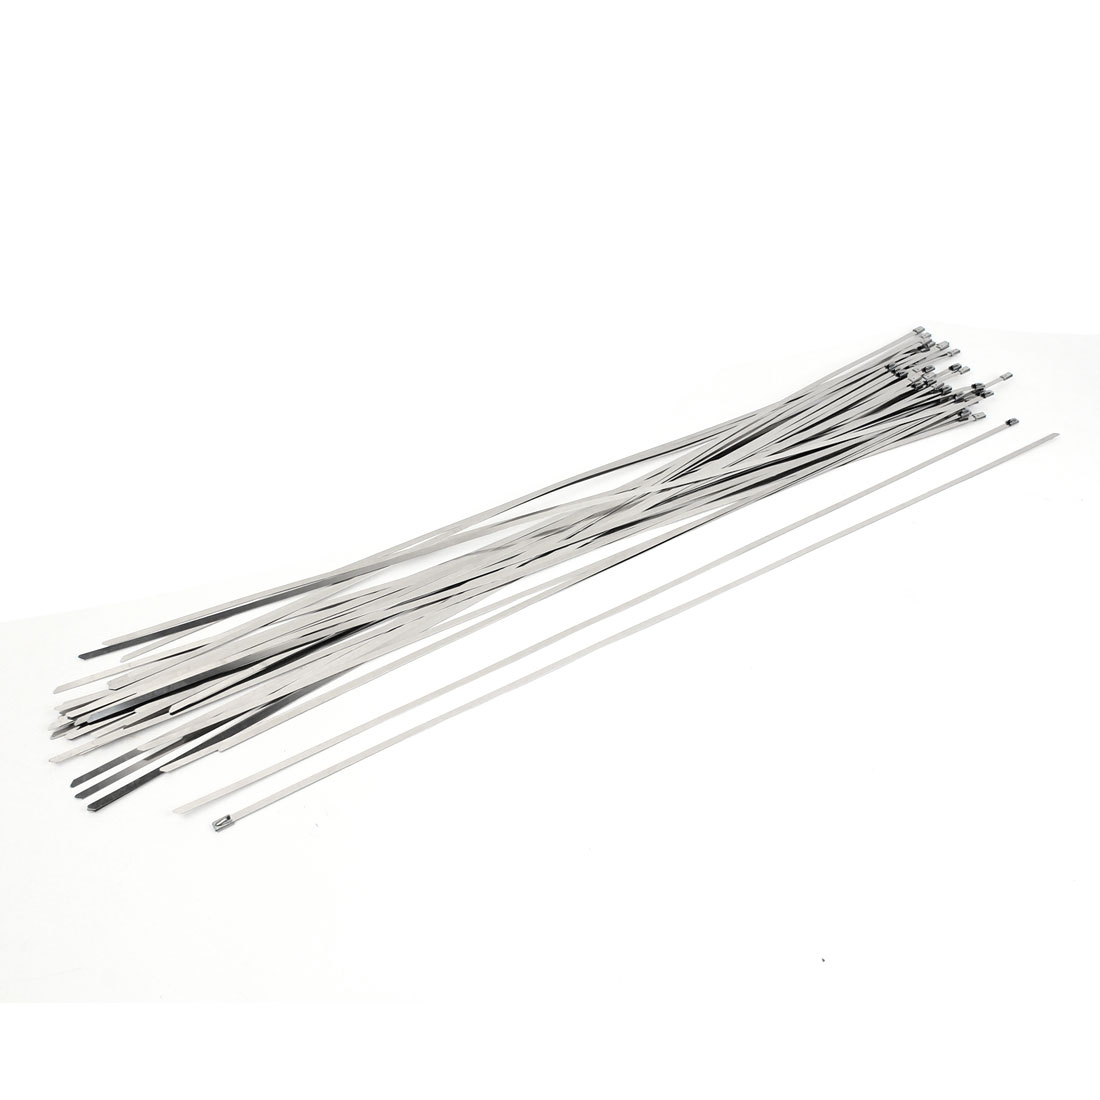 700mm Long 4.6mm Wide Stainless Steel Sprayed Cable Tie 50 PCS